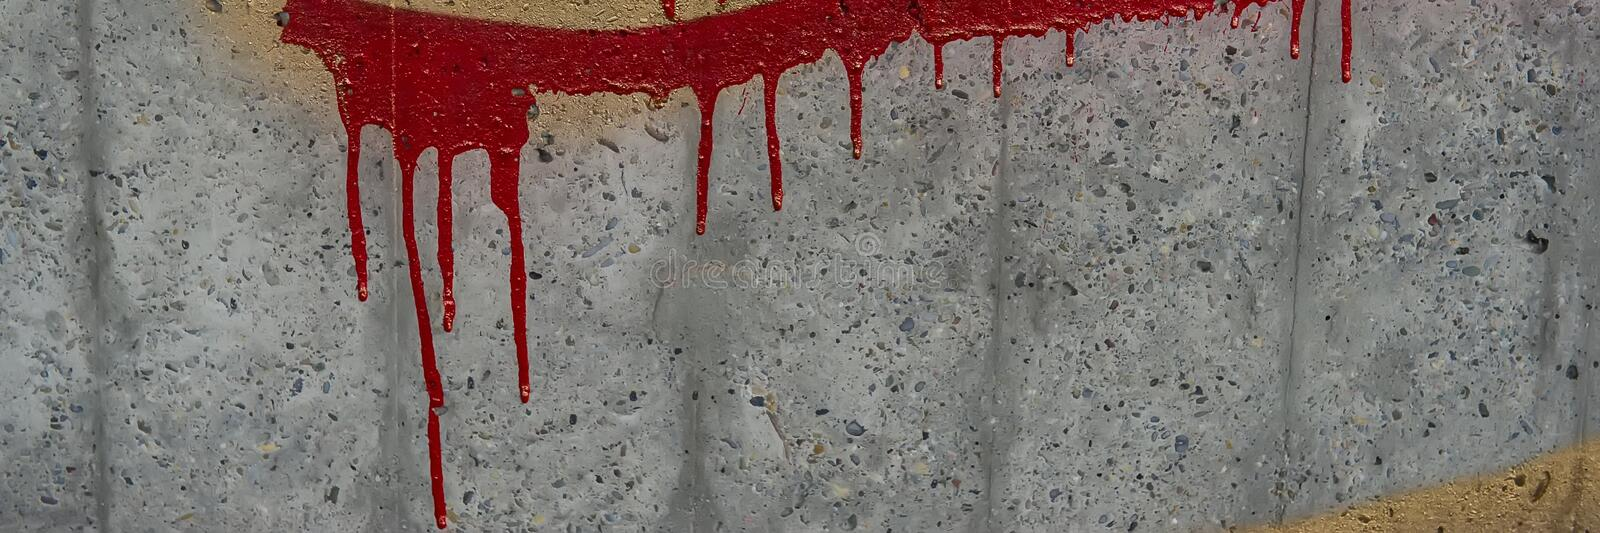 Concrete fence with traces of spilled red paint royalty free stock photos